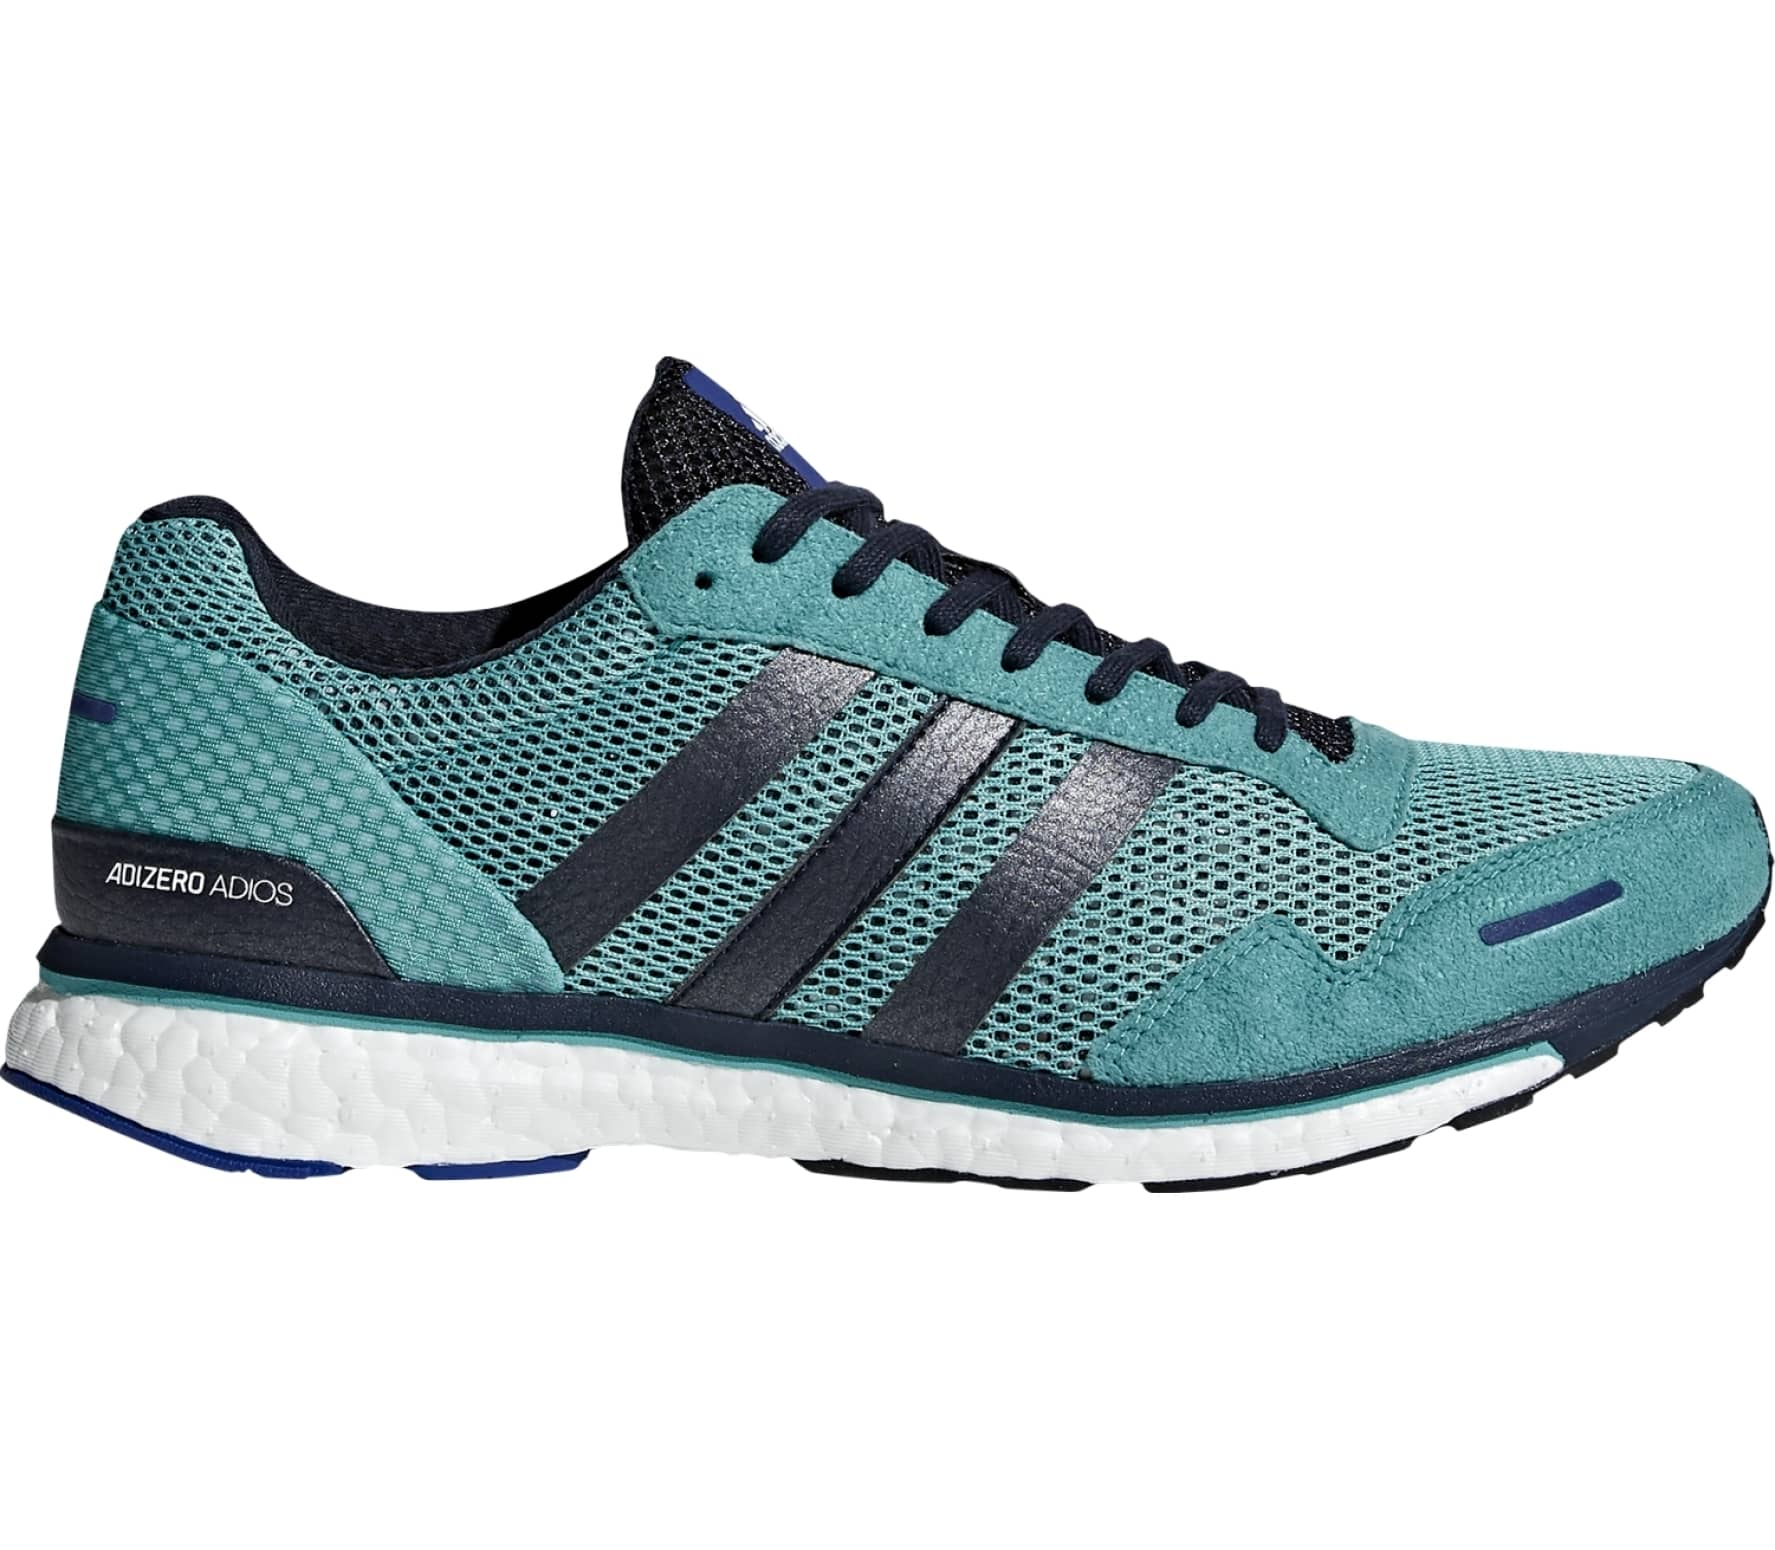 11d58947b382 Adidas - adizero adios 3 men s running shoes (turquoise black) - buy ...